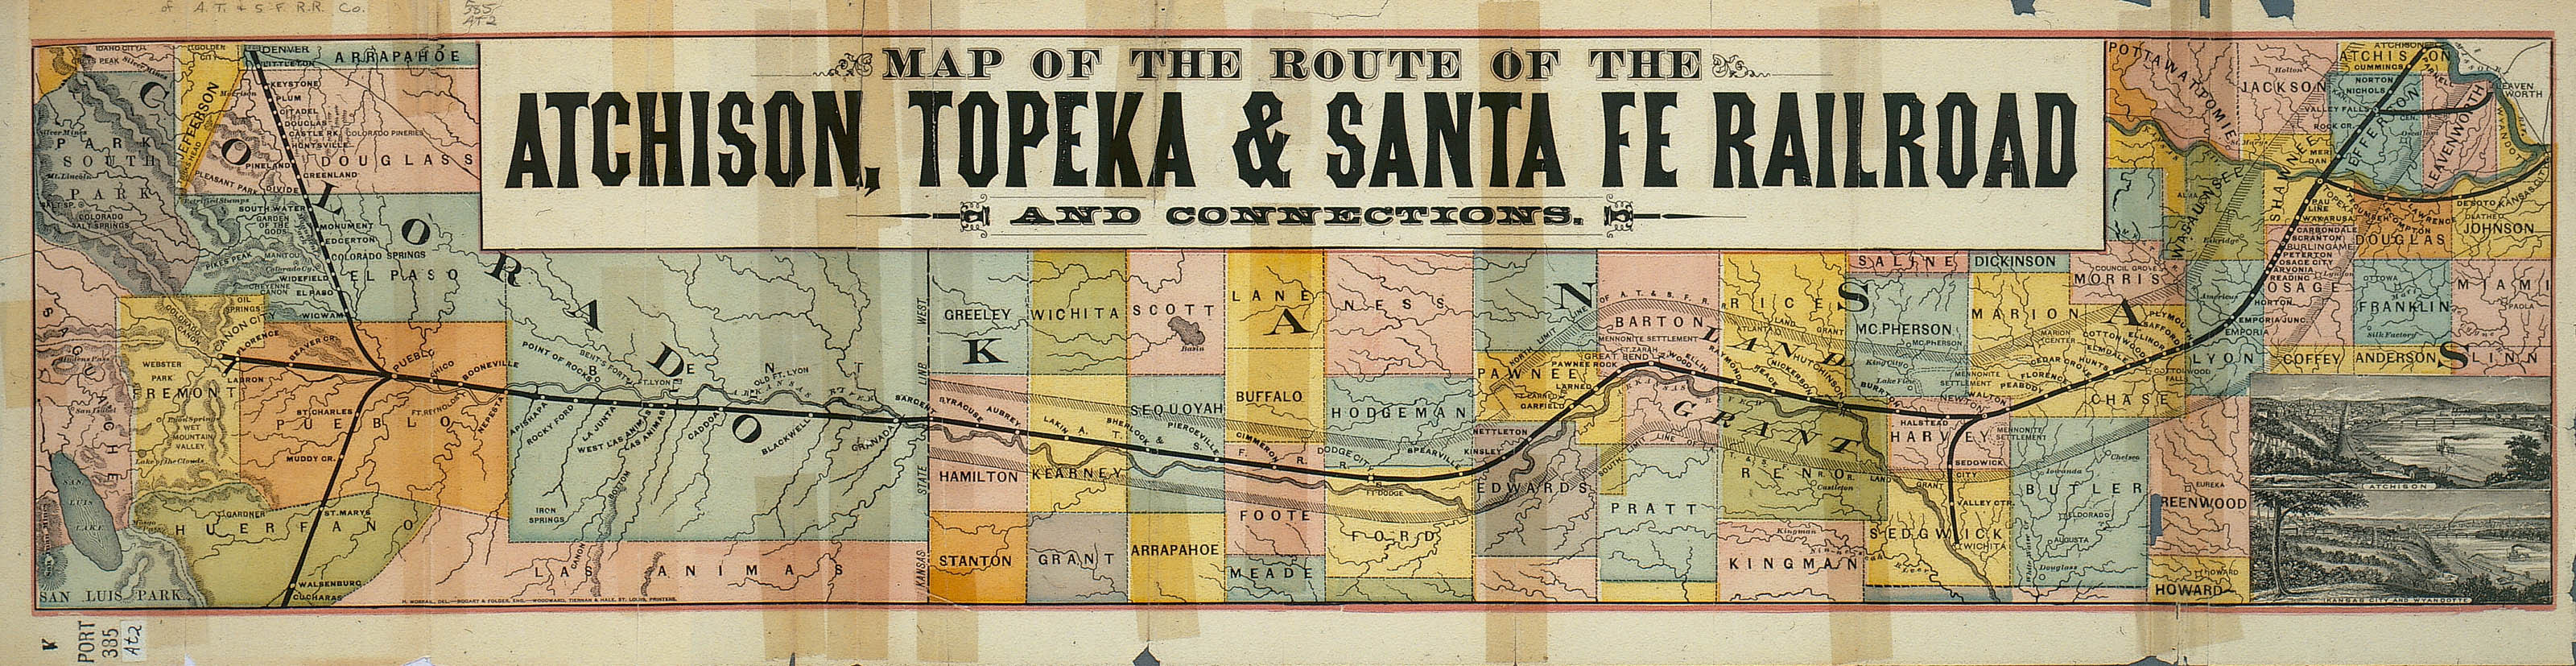 Map of the Atchison, Topeka & Santa Fe Railroad and connections